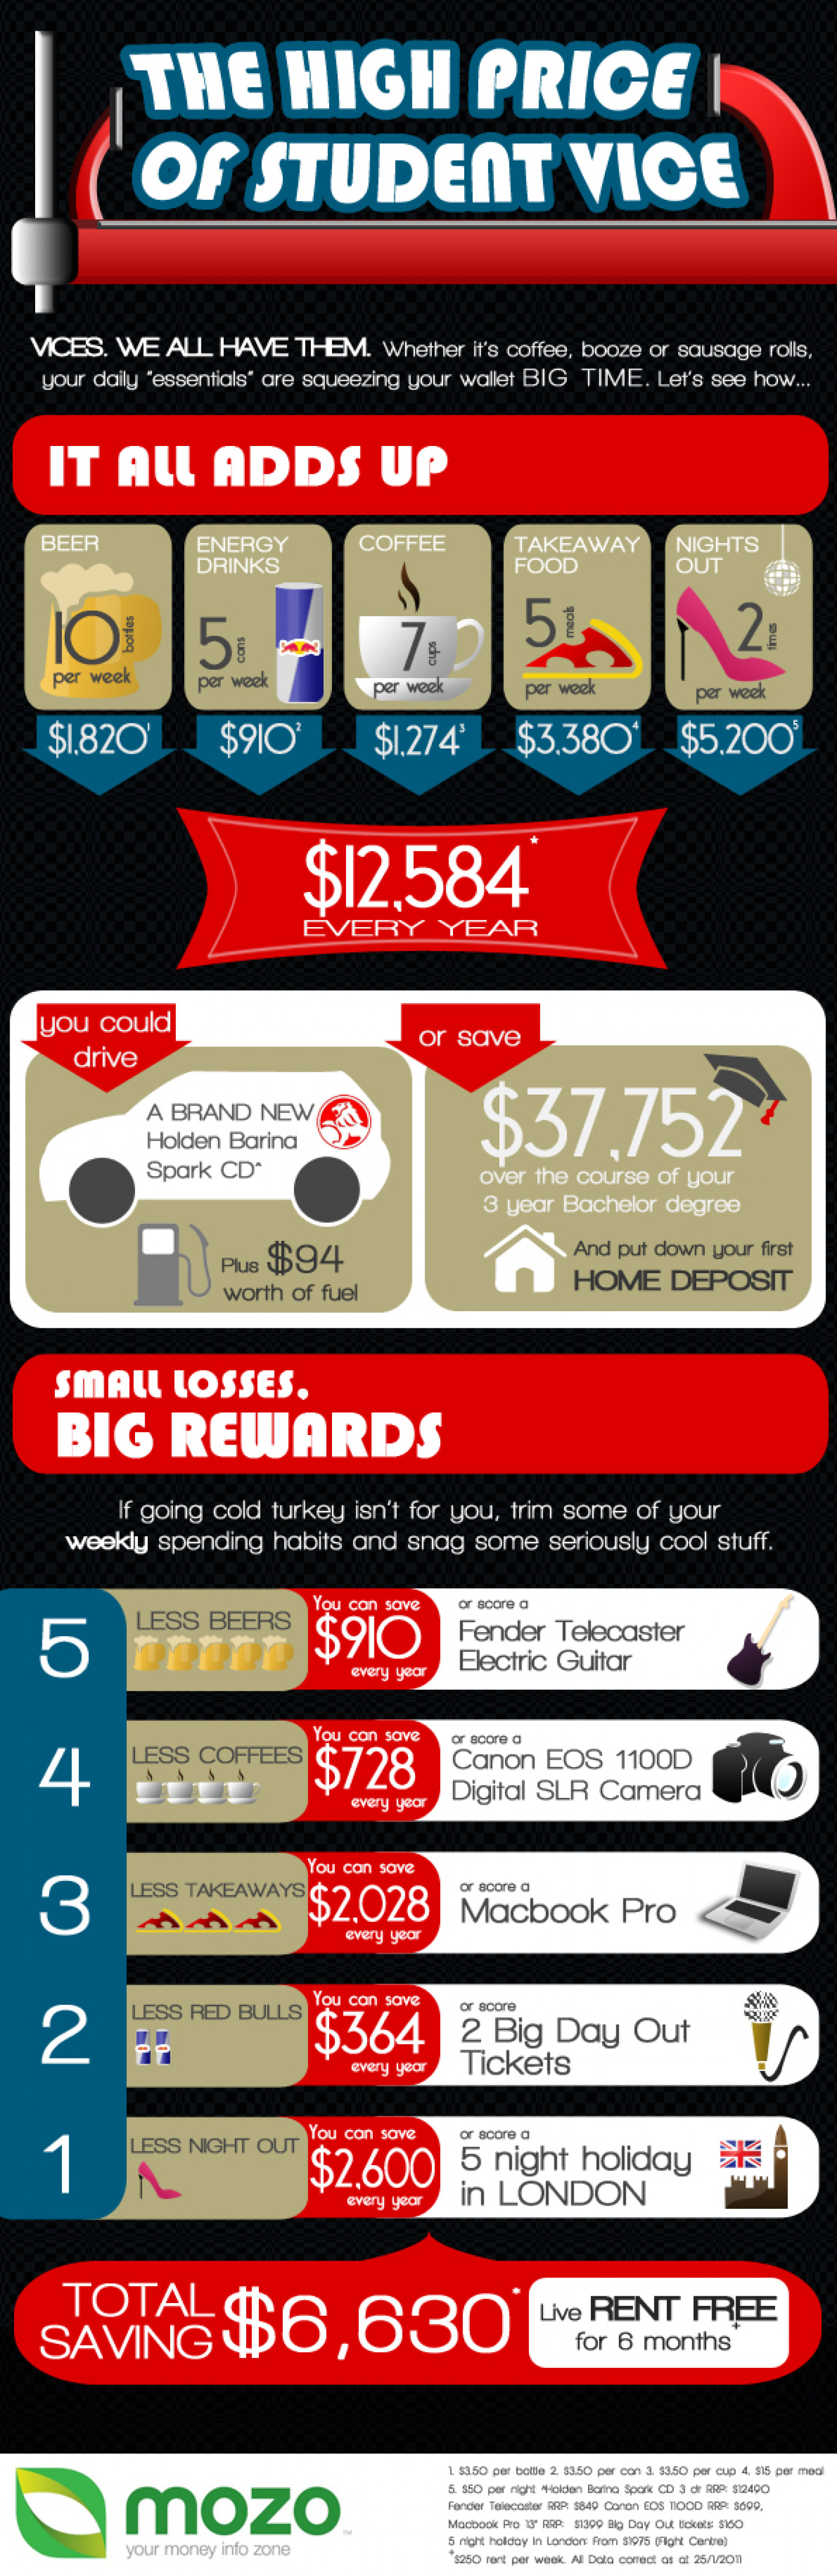 The High Price of Student Vice Infographic